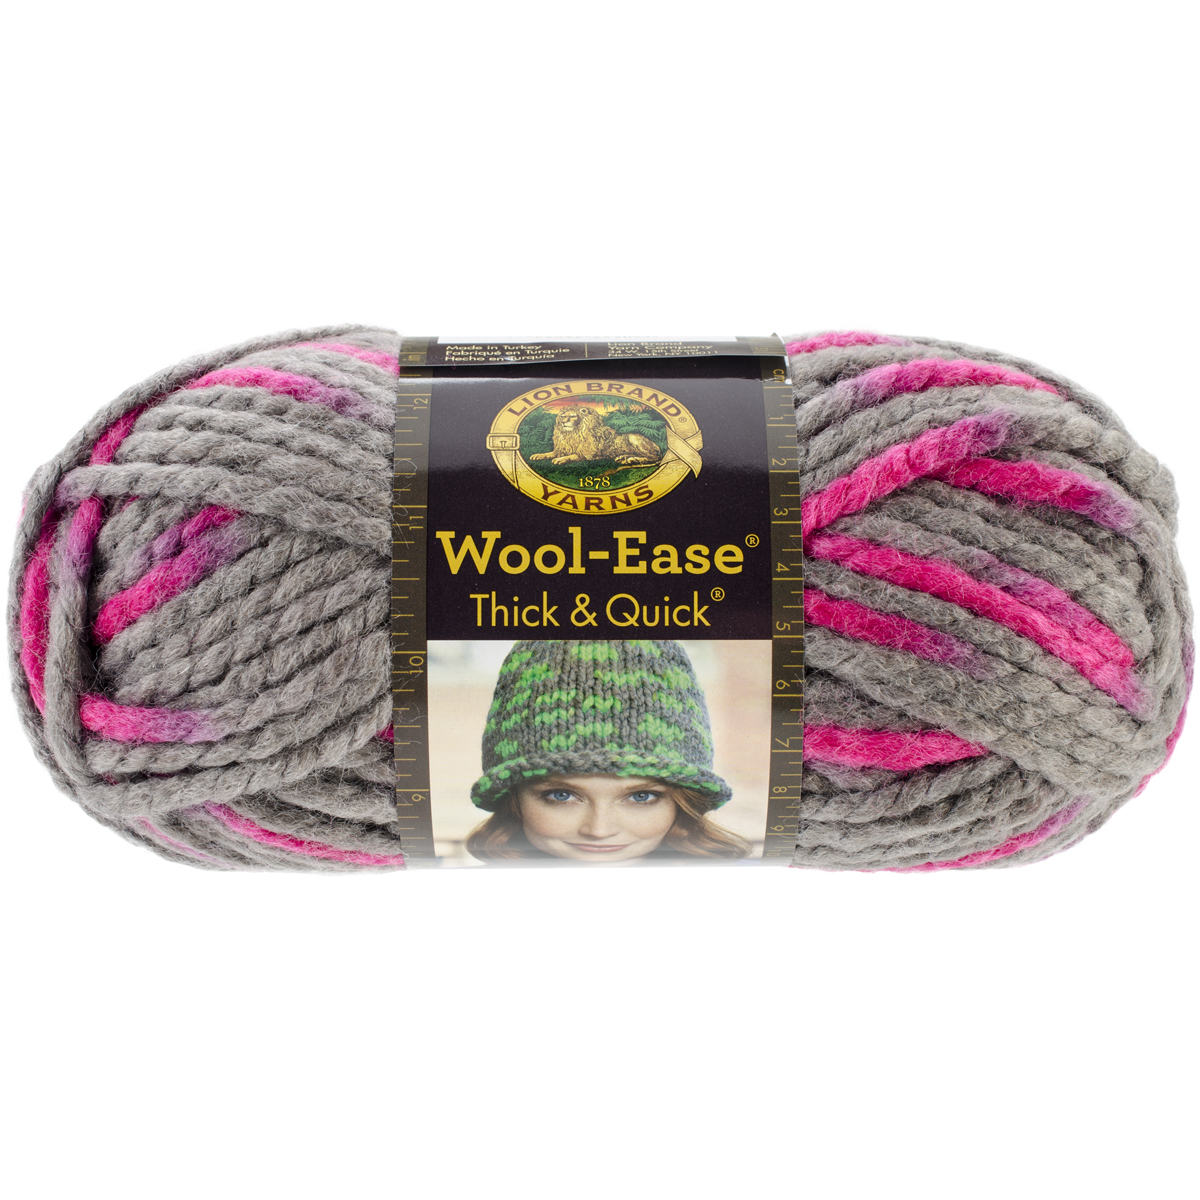 Lion Brand Wool-Ease Thick and Quick Yarn, Flamingo Multi-Colored